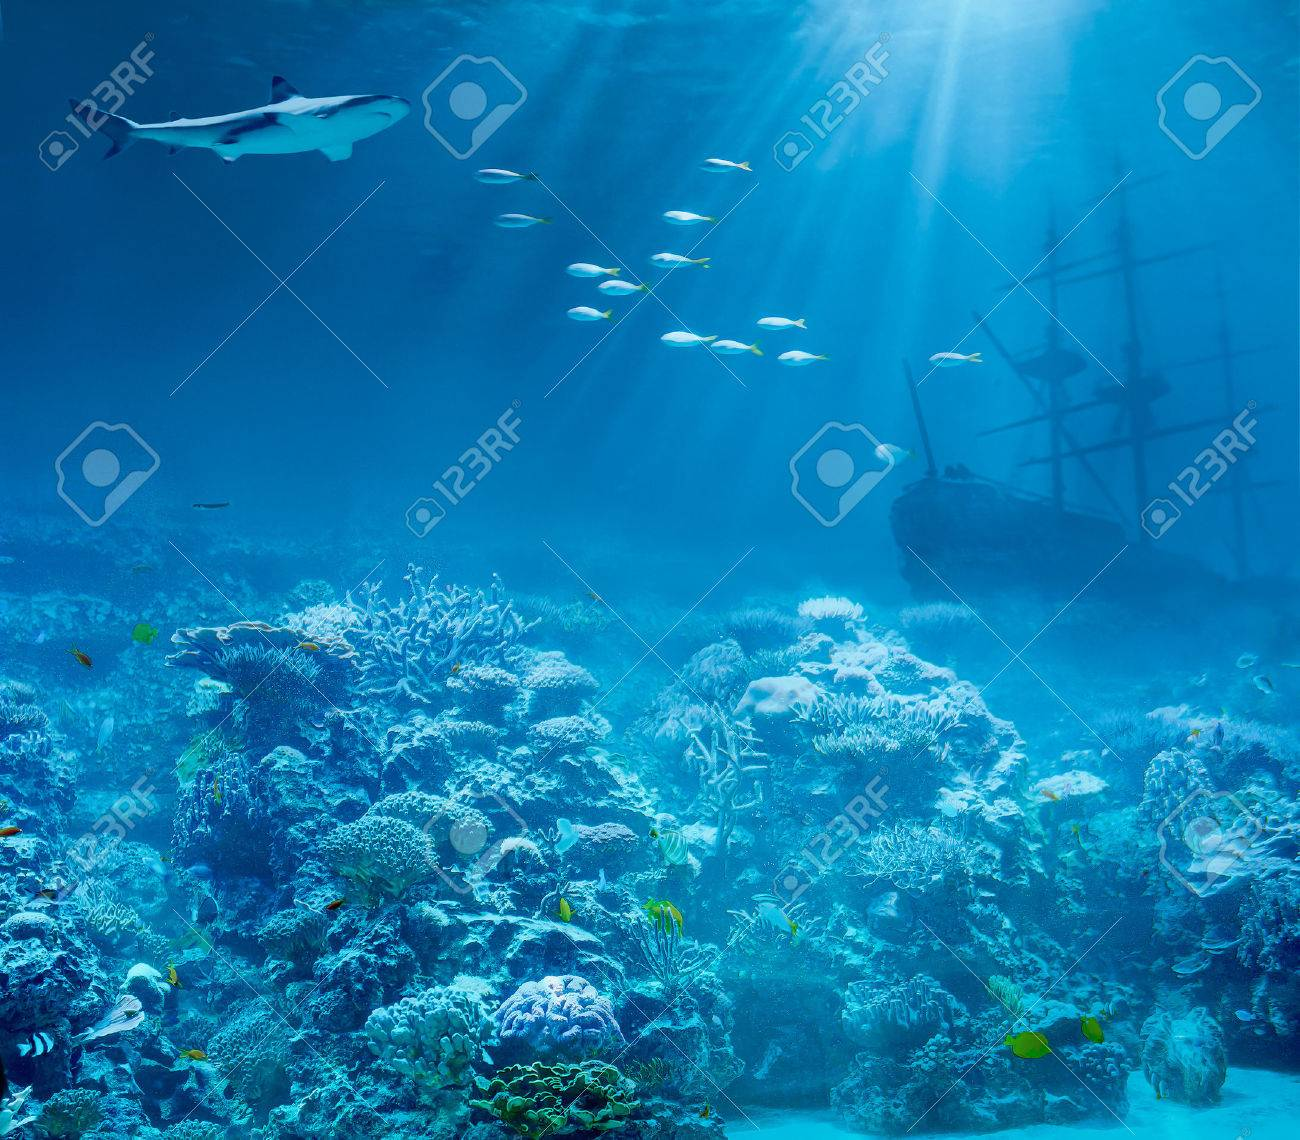 Sea or ocean underwater with shark and sunk treasures ship Stock Photo - 27676573